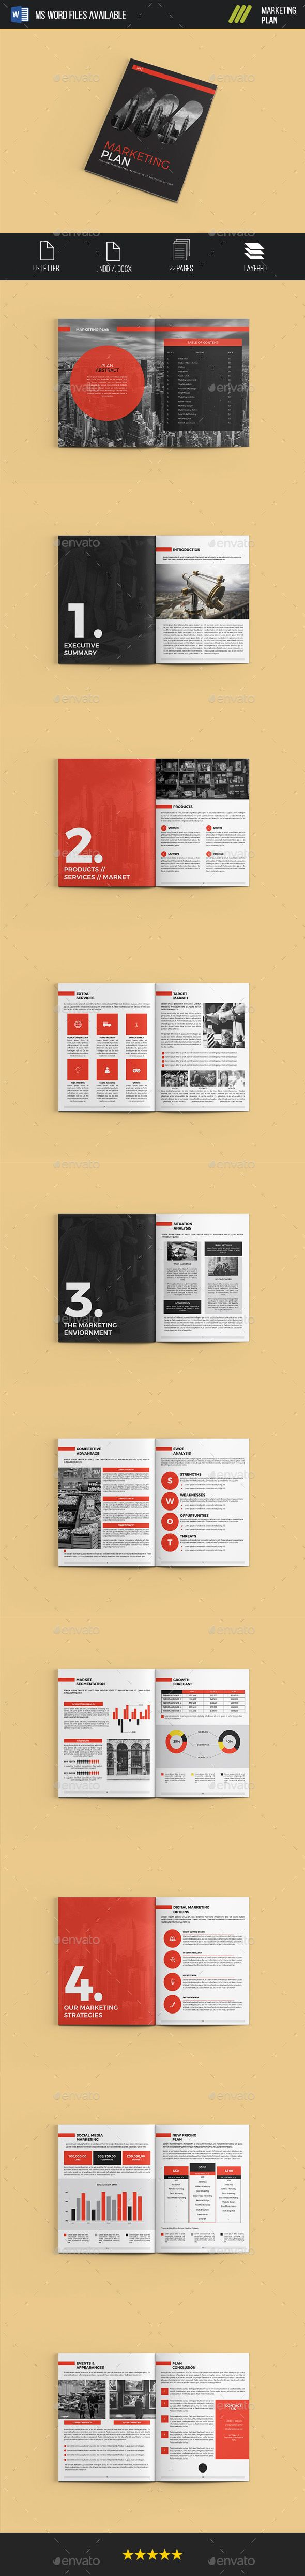 Marketing Plan Brochure Template InDesign INDD | Diseño Editorial ...